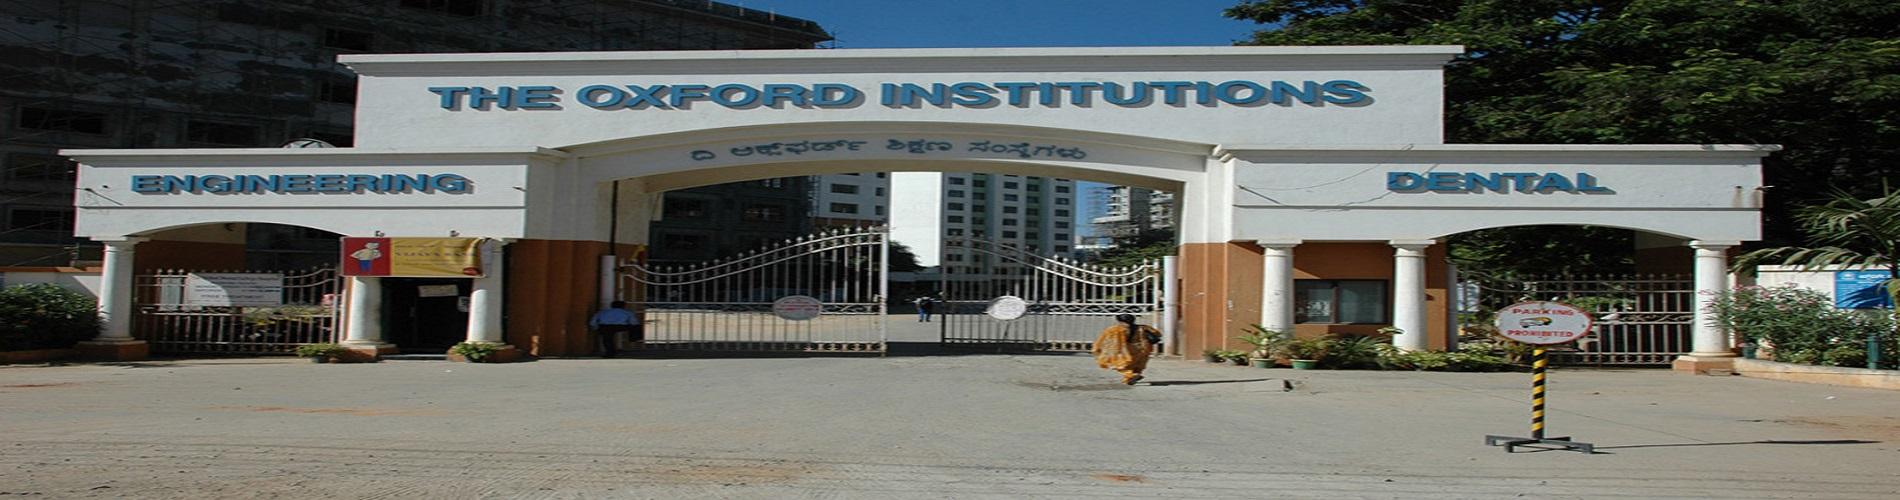 how-to-get-direct-management-quota-admission-oxford-dental-college-and-hospital-bangalore